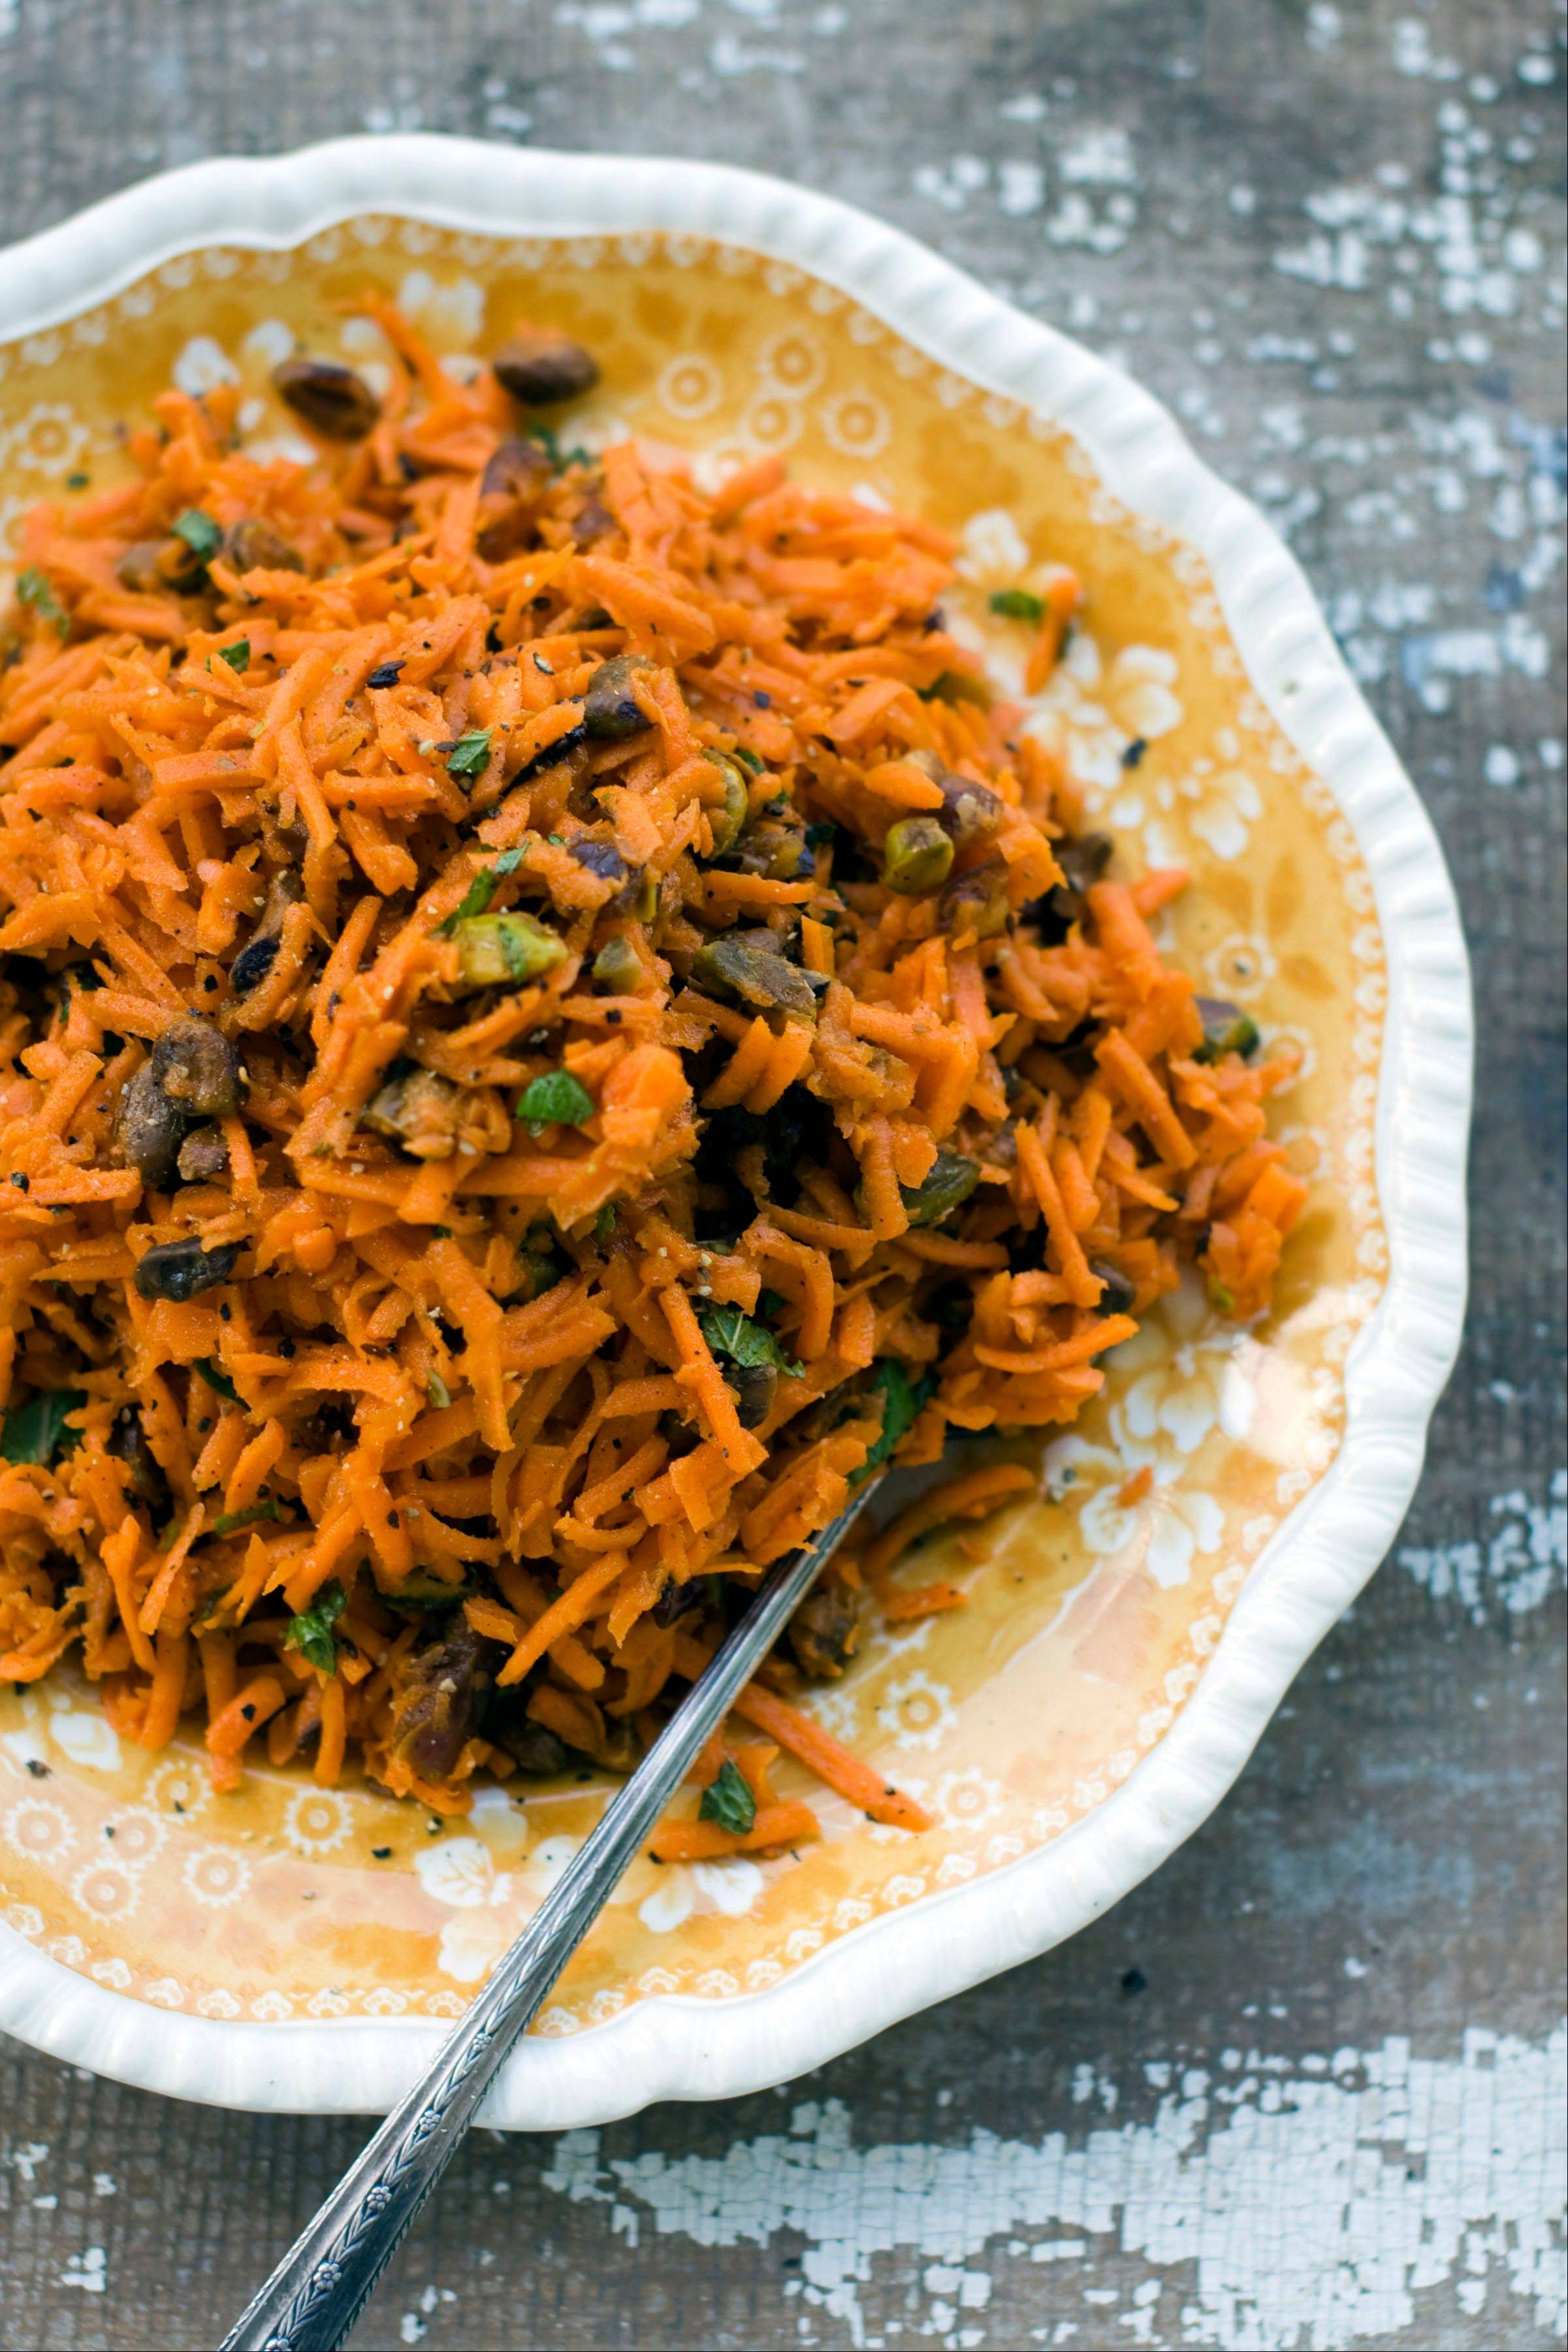 Grated Carrot Salad with Dates and Pistachios works for a Rosh Hashana meal or any fall feast.